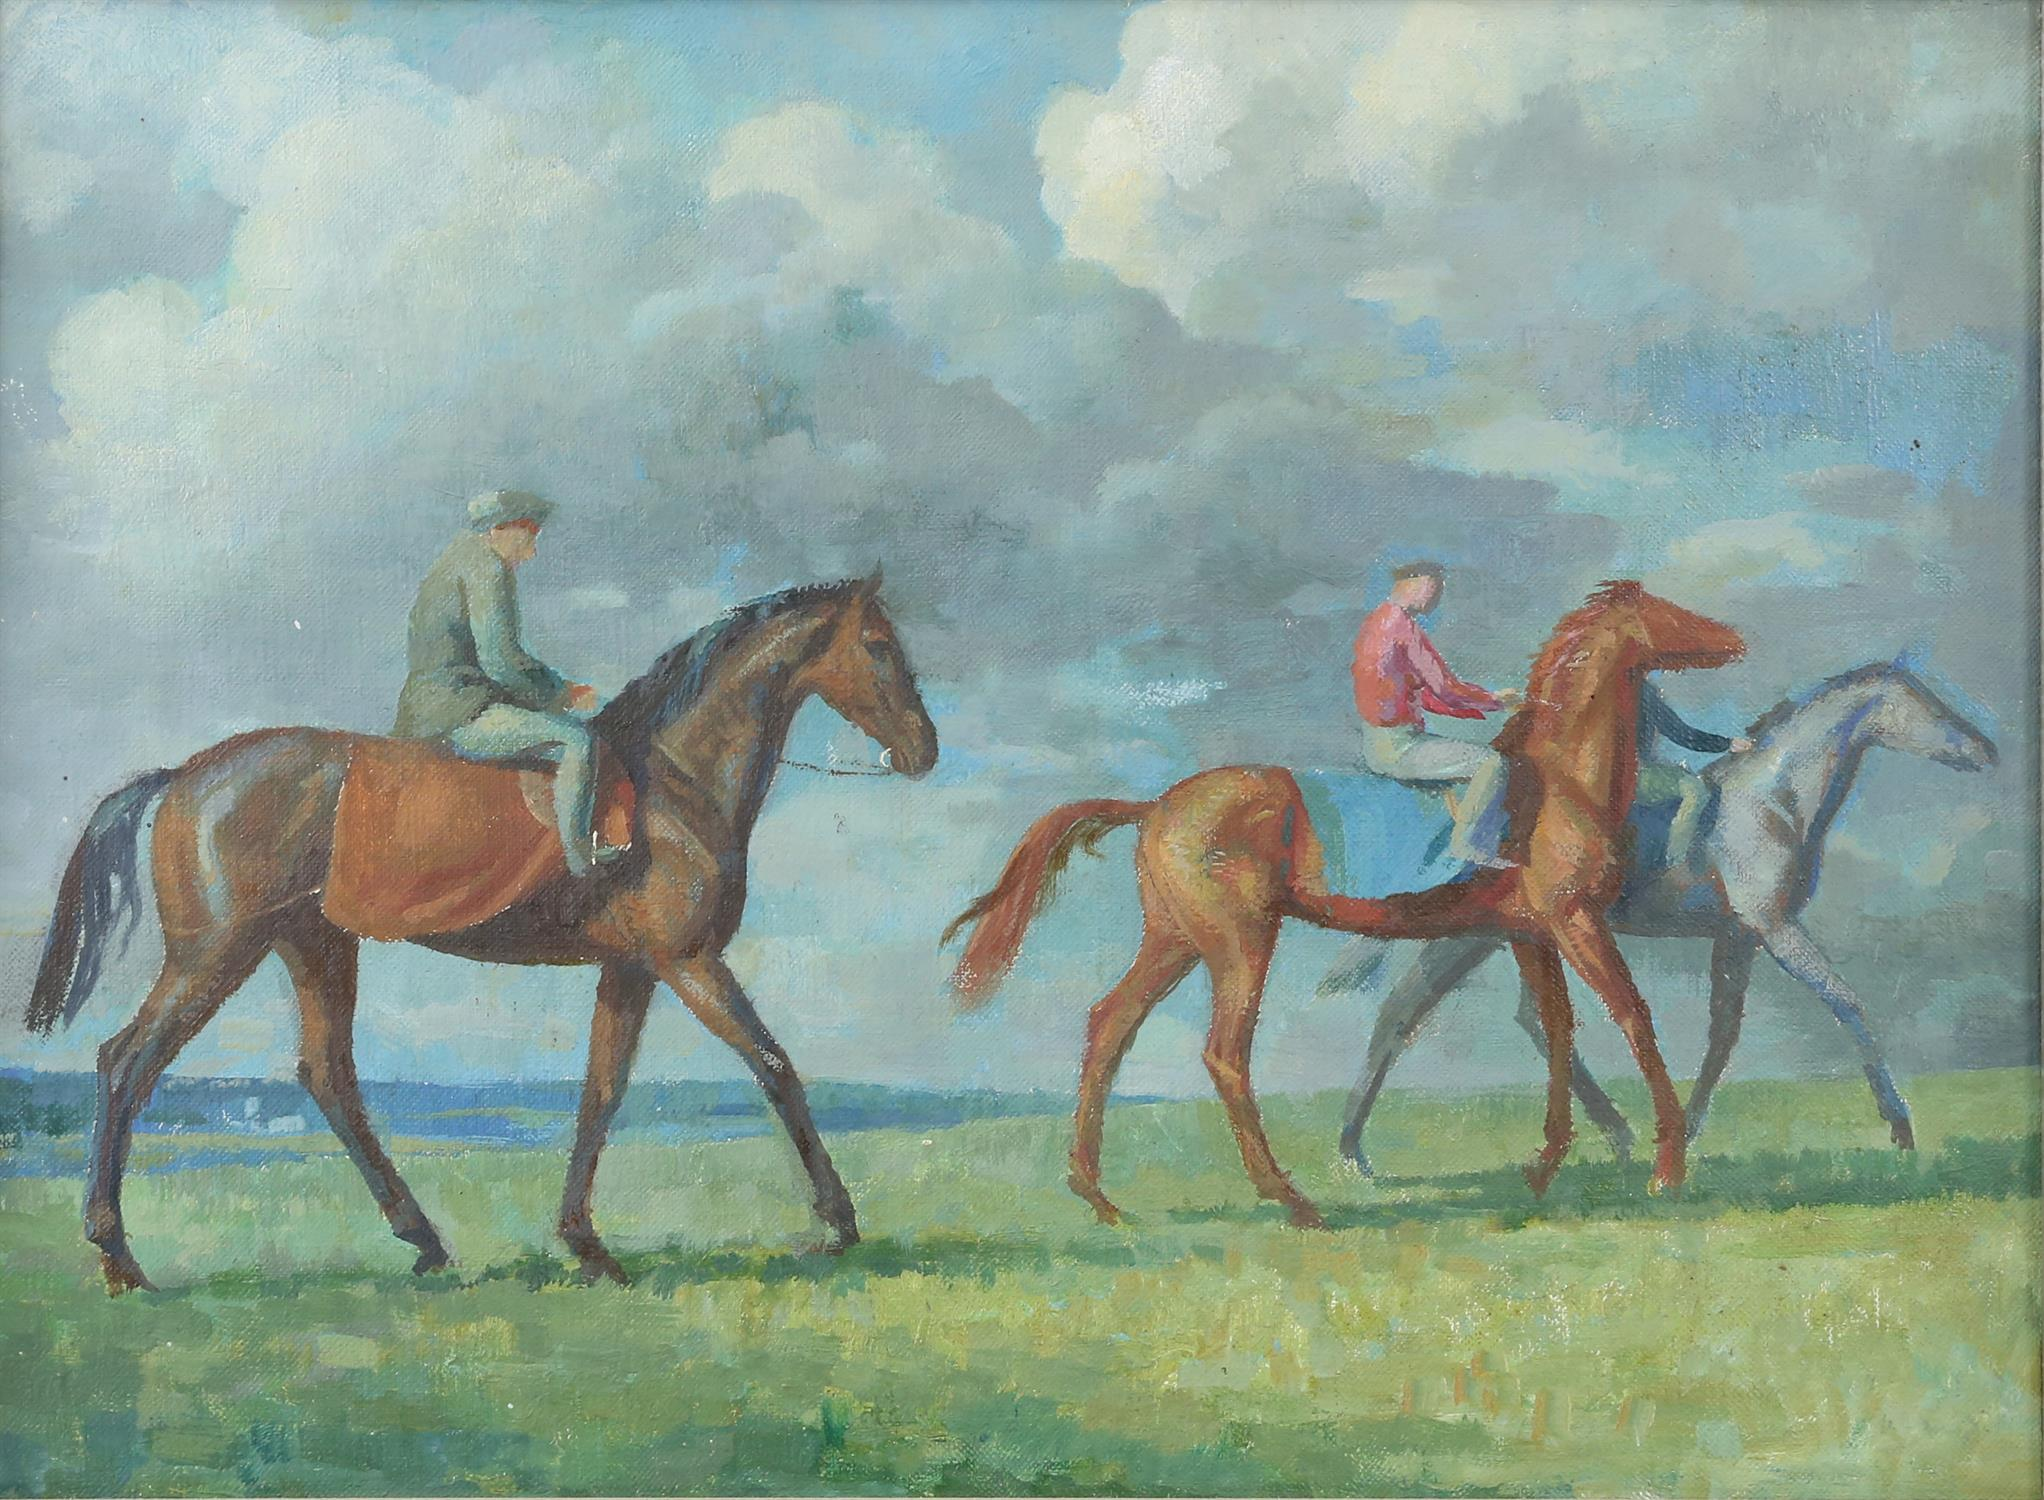 § Lionel Ellis (1903-1988) Riders in a landscape. Oil on canvas, unsigned. 38 x 48cm.